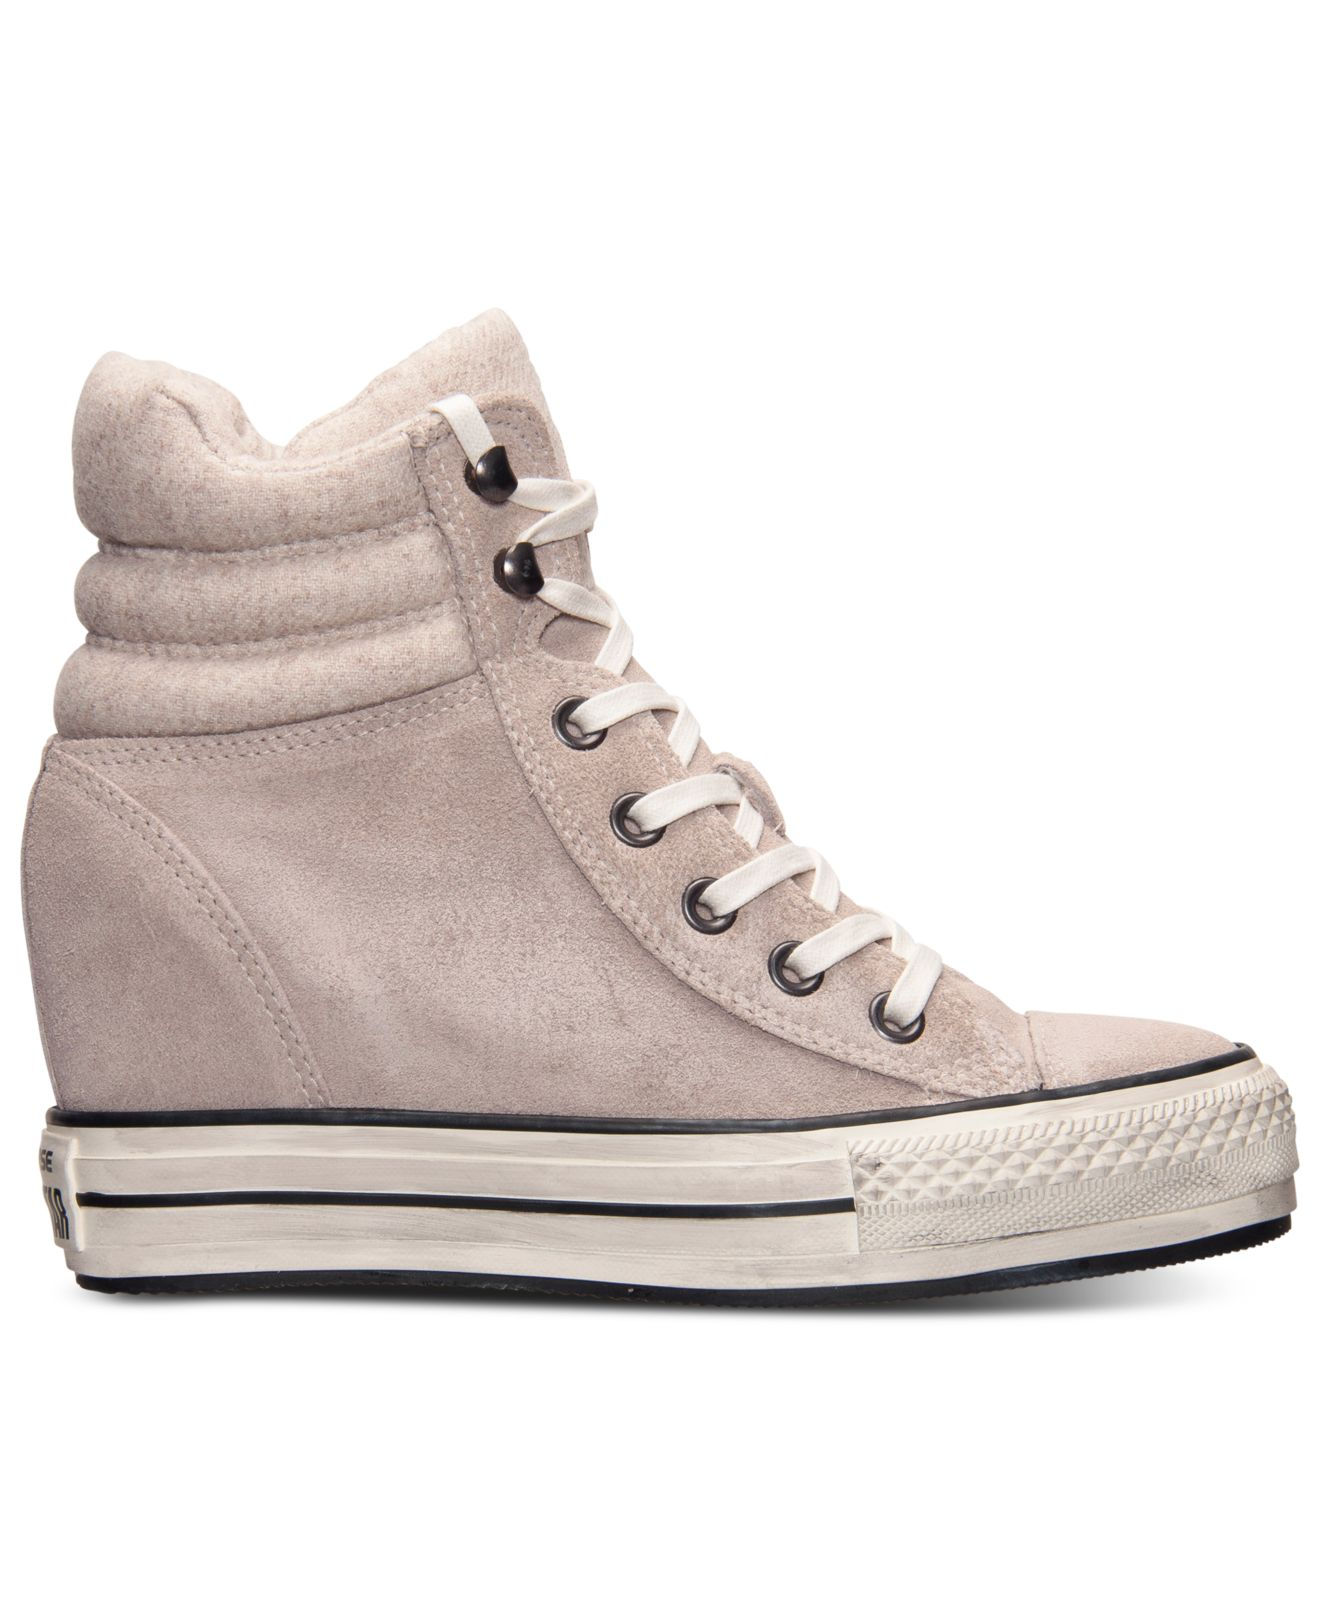 e7a0a6b0ae9 Gallery. Previously sold at  Macy s · Women s Converse Platform ...